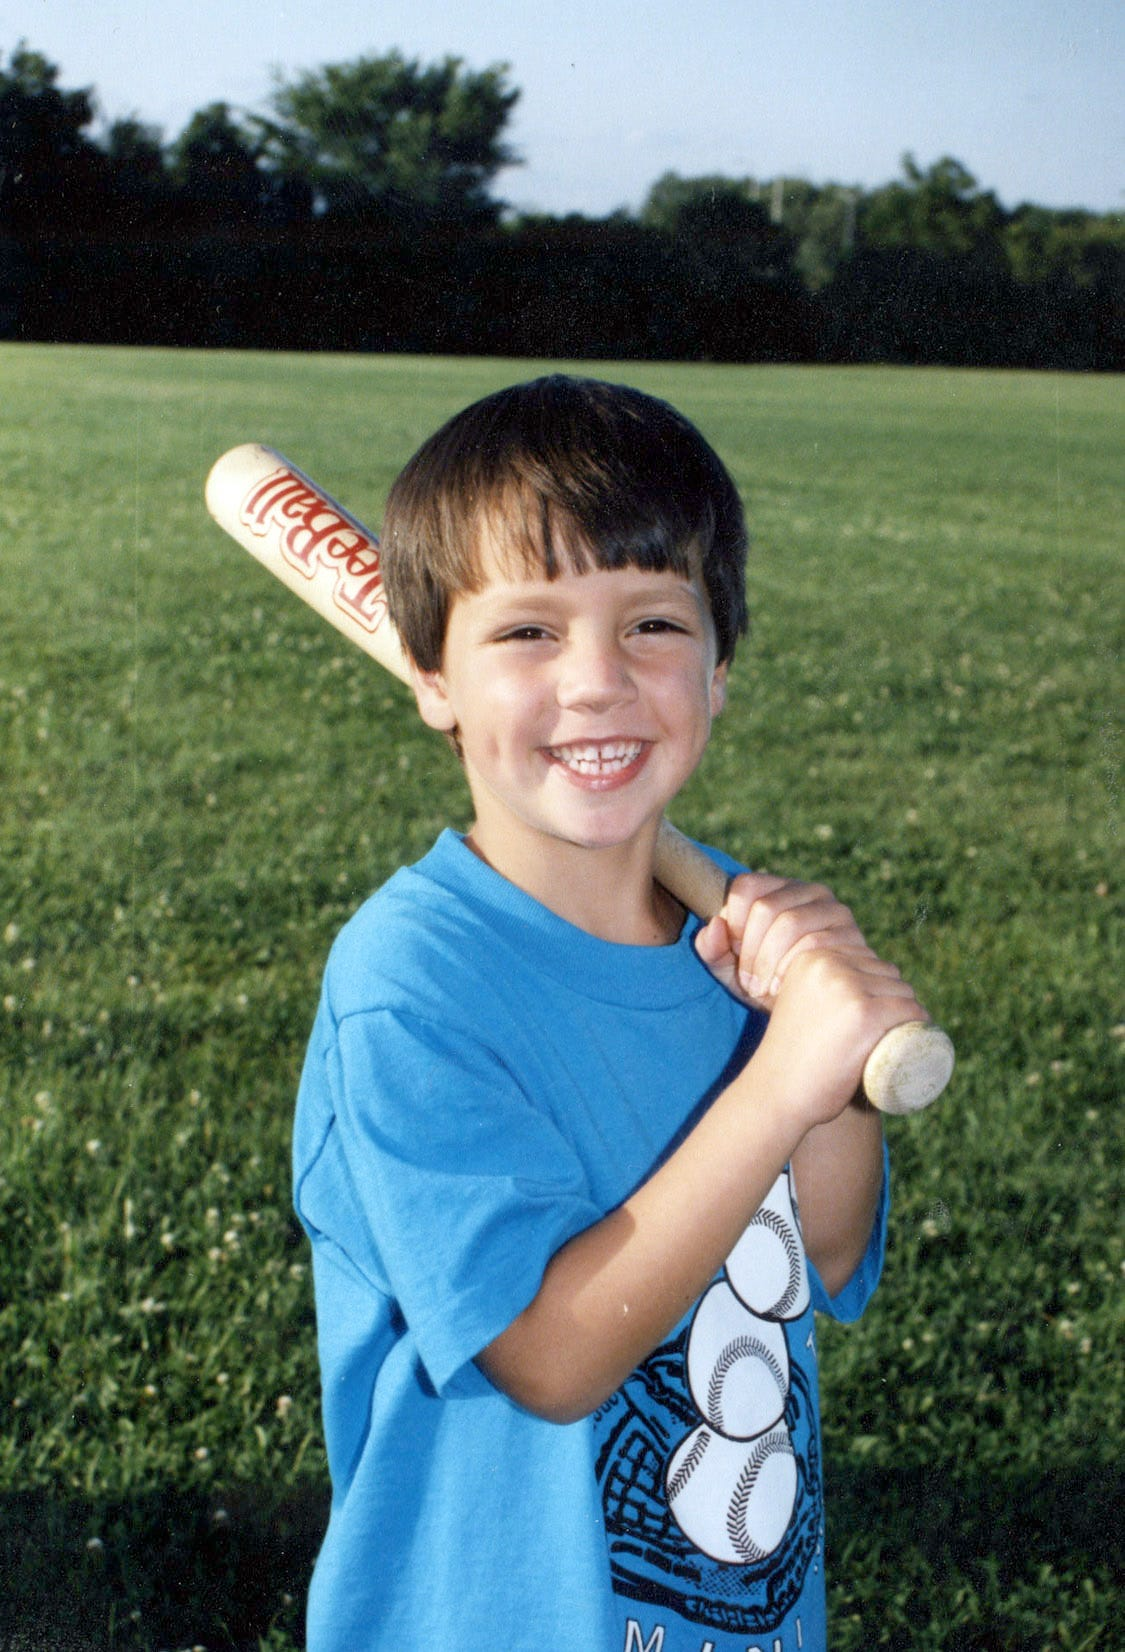 mental sweeney -- Rob Sweeney, age 6, at T-ball ------ Photos for Meg Kissinger story about Rob Sweeney and his mother, Debbie Sweeney, desperate attempt to find him a place to live in California. Rob, 25, grew up in Hales Corners and graduated from Whitnall High School. He suffered from a nervous breakdown in college and was diagnosed with schizo-effective illness, a combination of symptoms: mania, depression, delusions, paranoia. For the past seven years, Rob has been hospitalized 10 times in Milwaukee. He keeps getting kicked out of the places where he lives Ð apartments, group homes, even homeless shelters. ÒHe wonÕt follow the rules,Ó said his mother, Debbie Sweeney. She hopes that she can find a place for Rob where he can live safely, have a job or go to school and make a life for himself. - Photo by Meg Kissinger / mkissinger@jrn.com